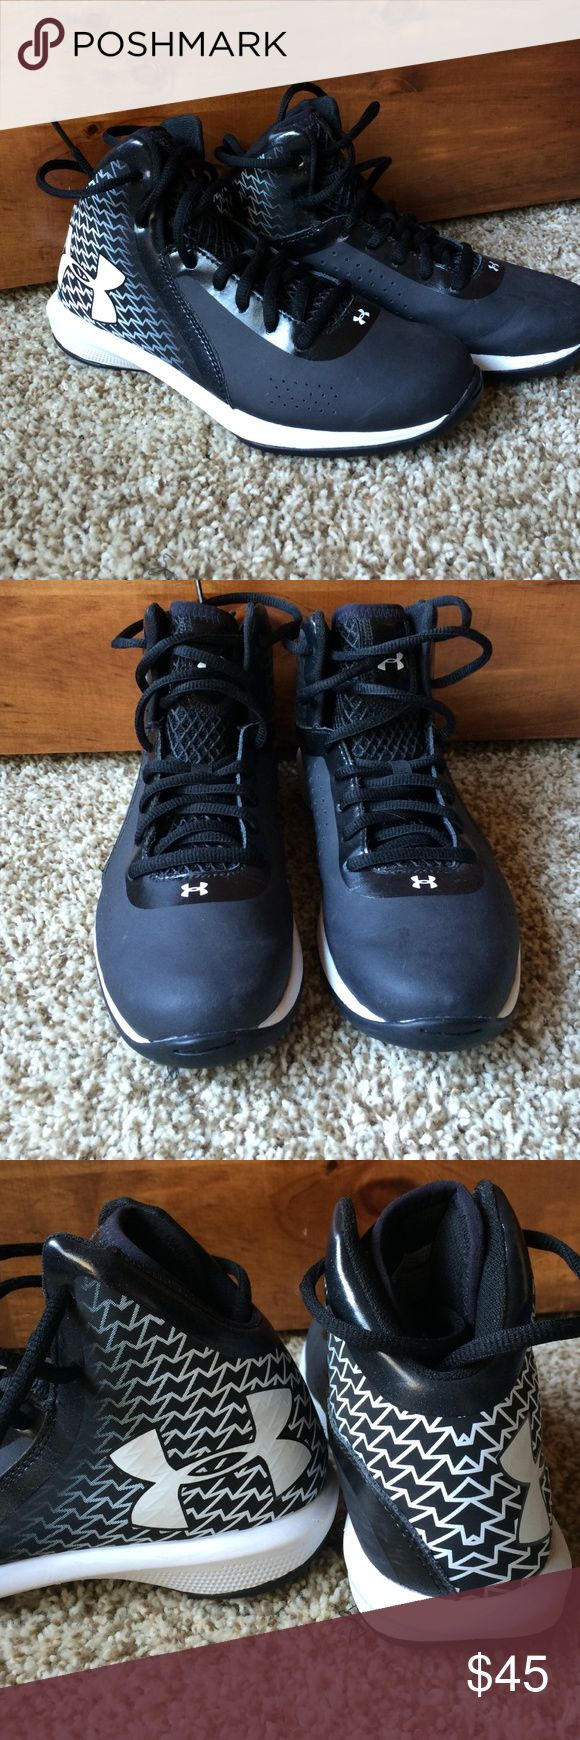 Under Armour Boys High Top Tennis Shoes In Great condition, worn a handful of times. Under Armour Shoes Sneakers